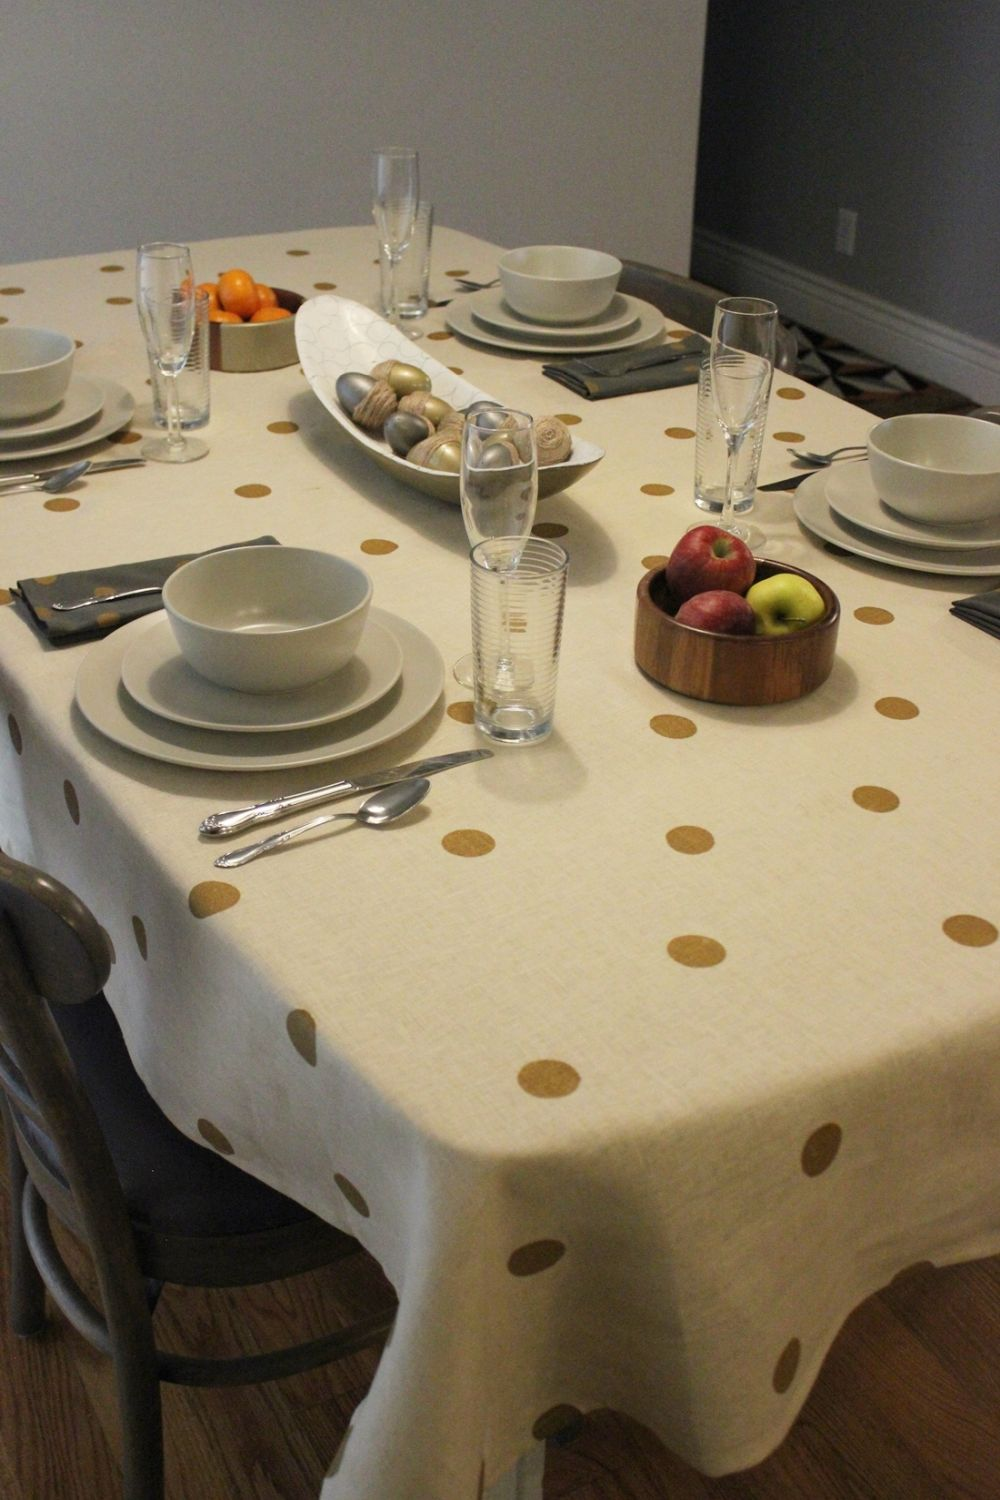 linen drapes so beautifully as a tablecloth